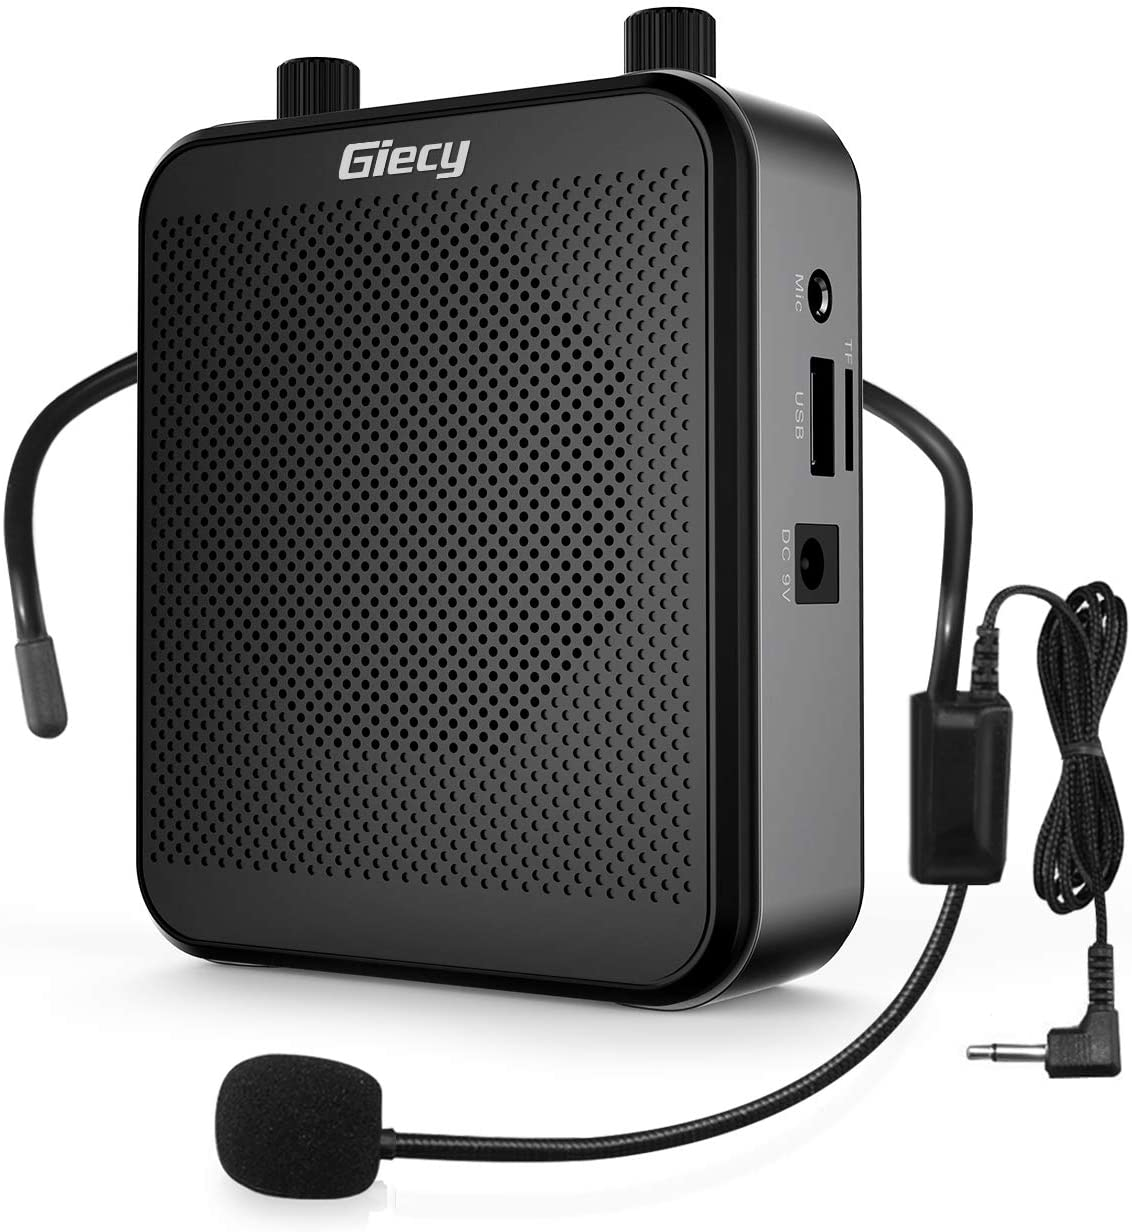 Giecy Voice Amplifier Portable Bluetooth 30W 2800mAh Rechargeable PA System Speaker for Multiple Locations Such as Classroom, Meetings and Outdoors